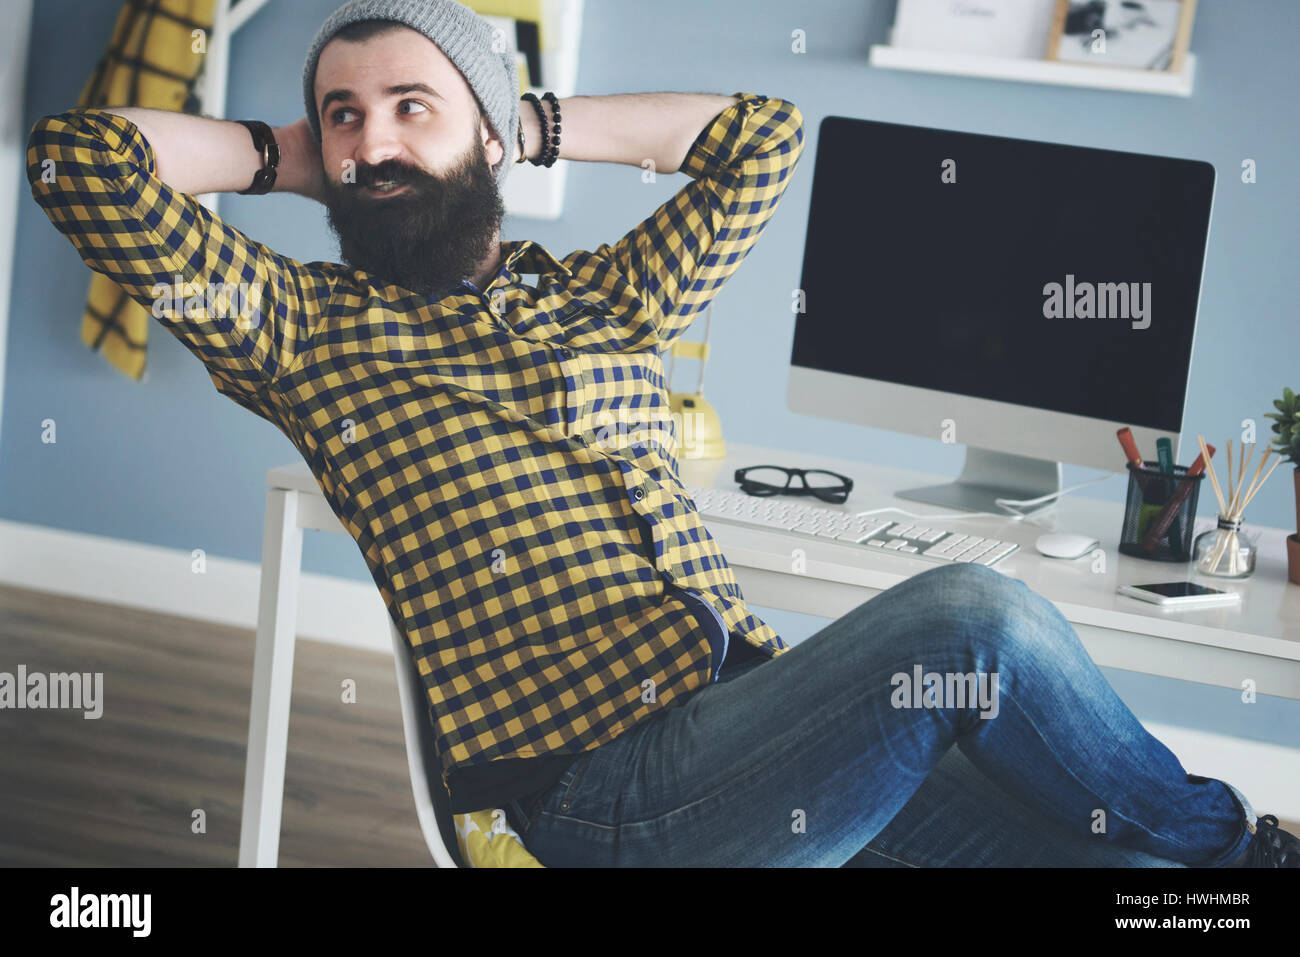 Business man reclining on chair next to computer - Stock Image